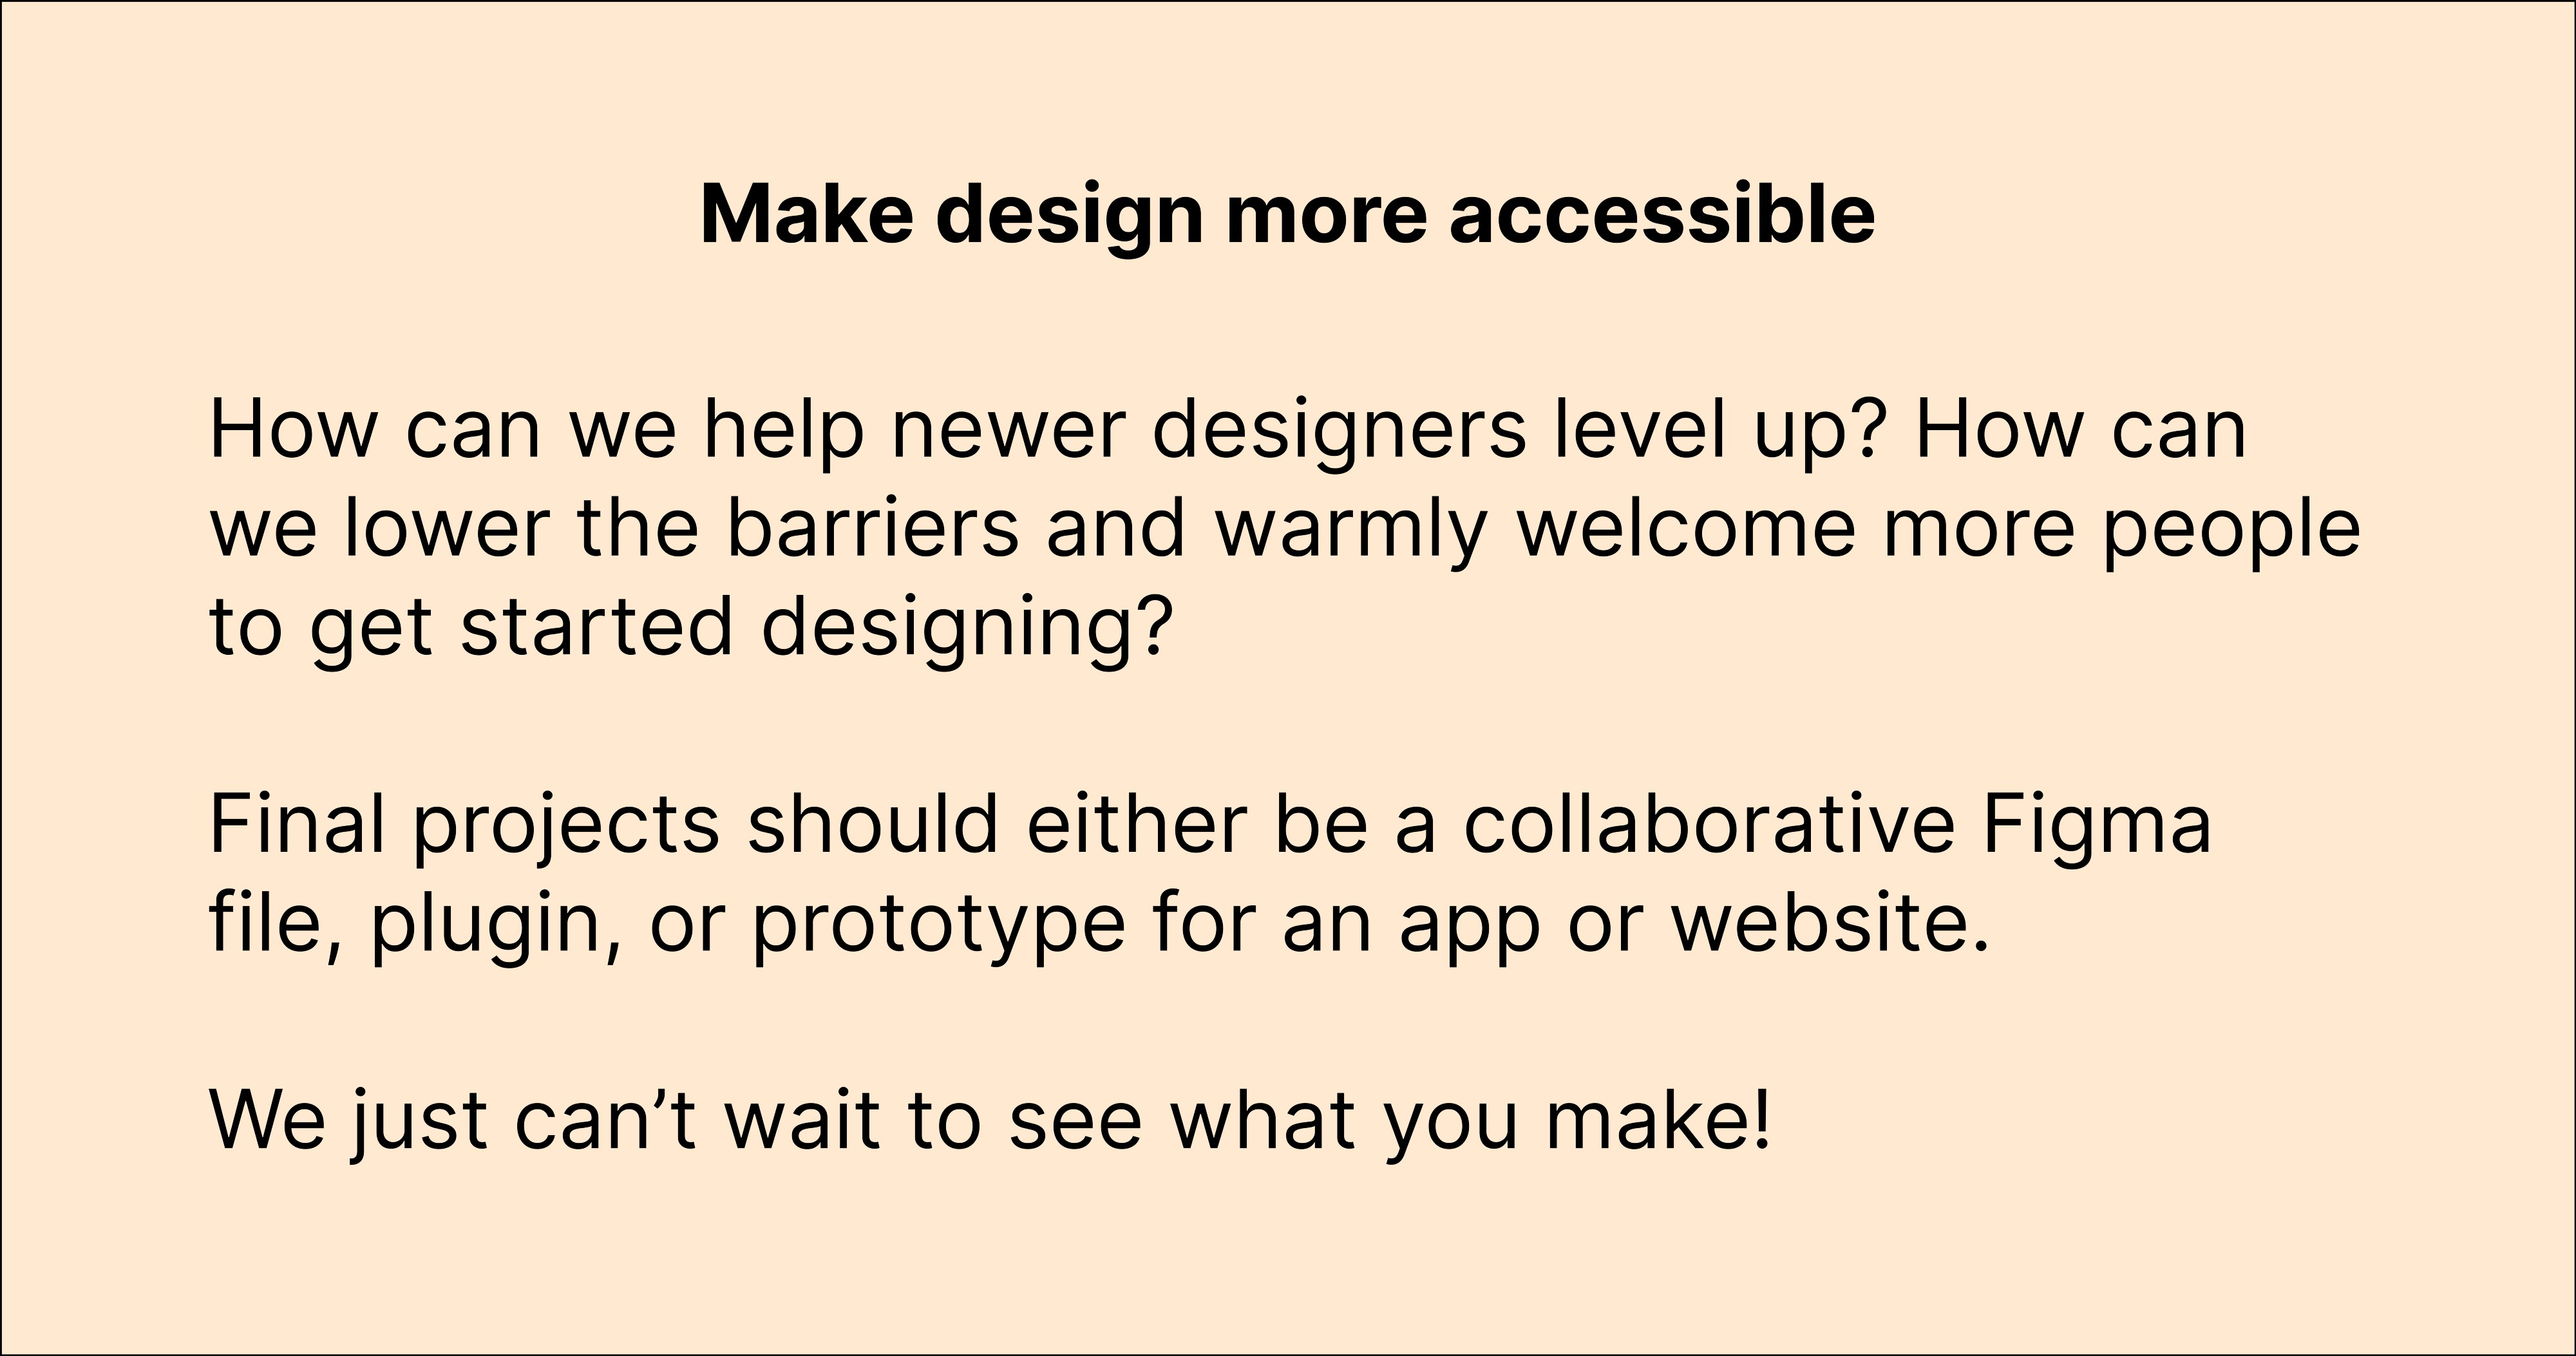 Our design brief: How can we help newer designers level up? How can we lower the barriers and warmly welcome new designers?